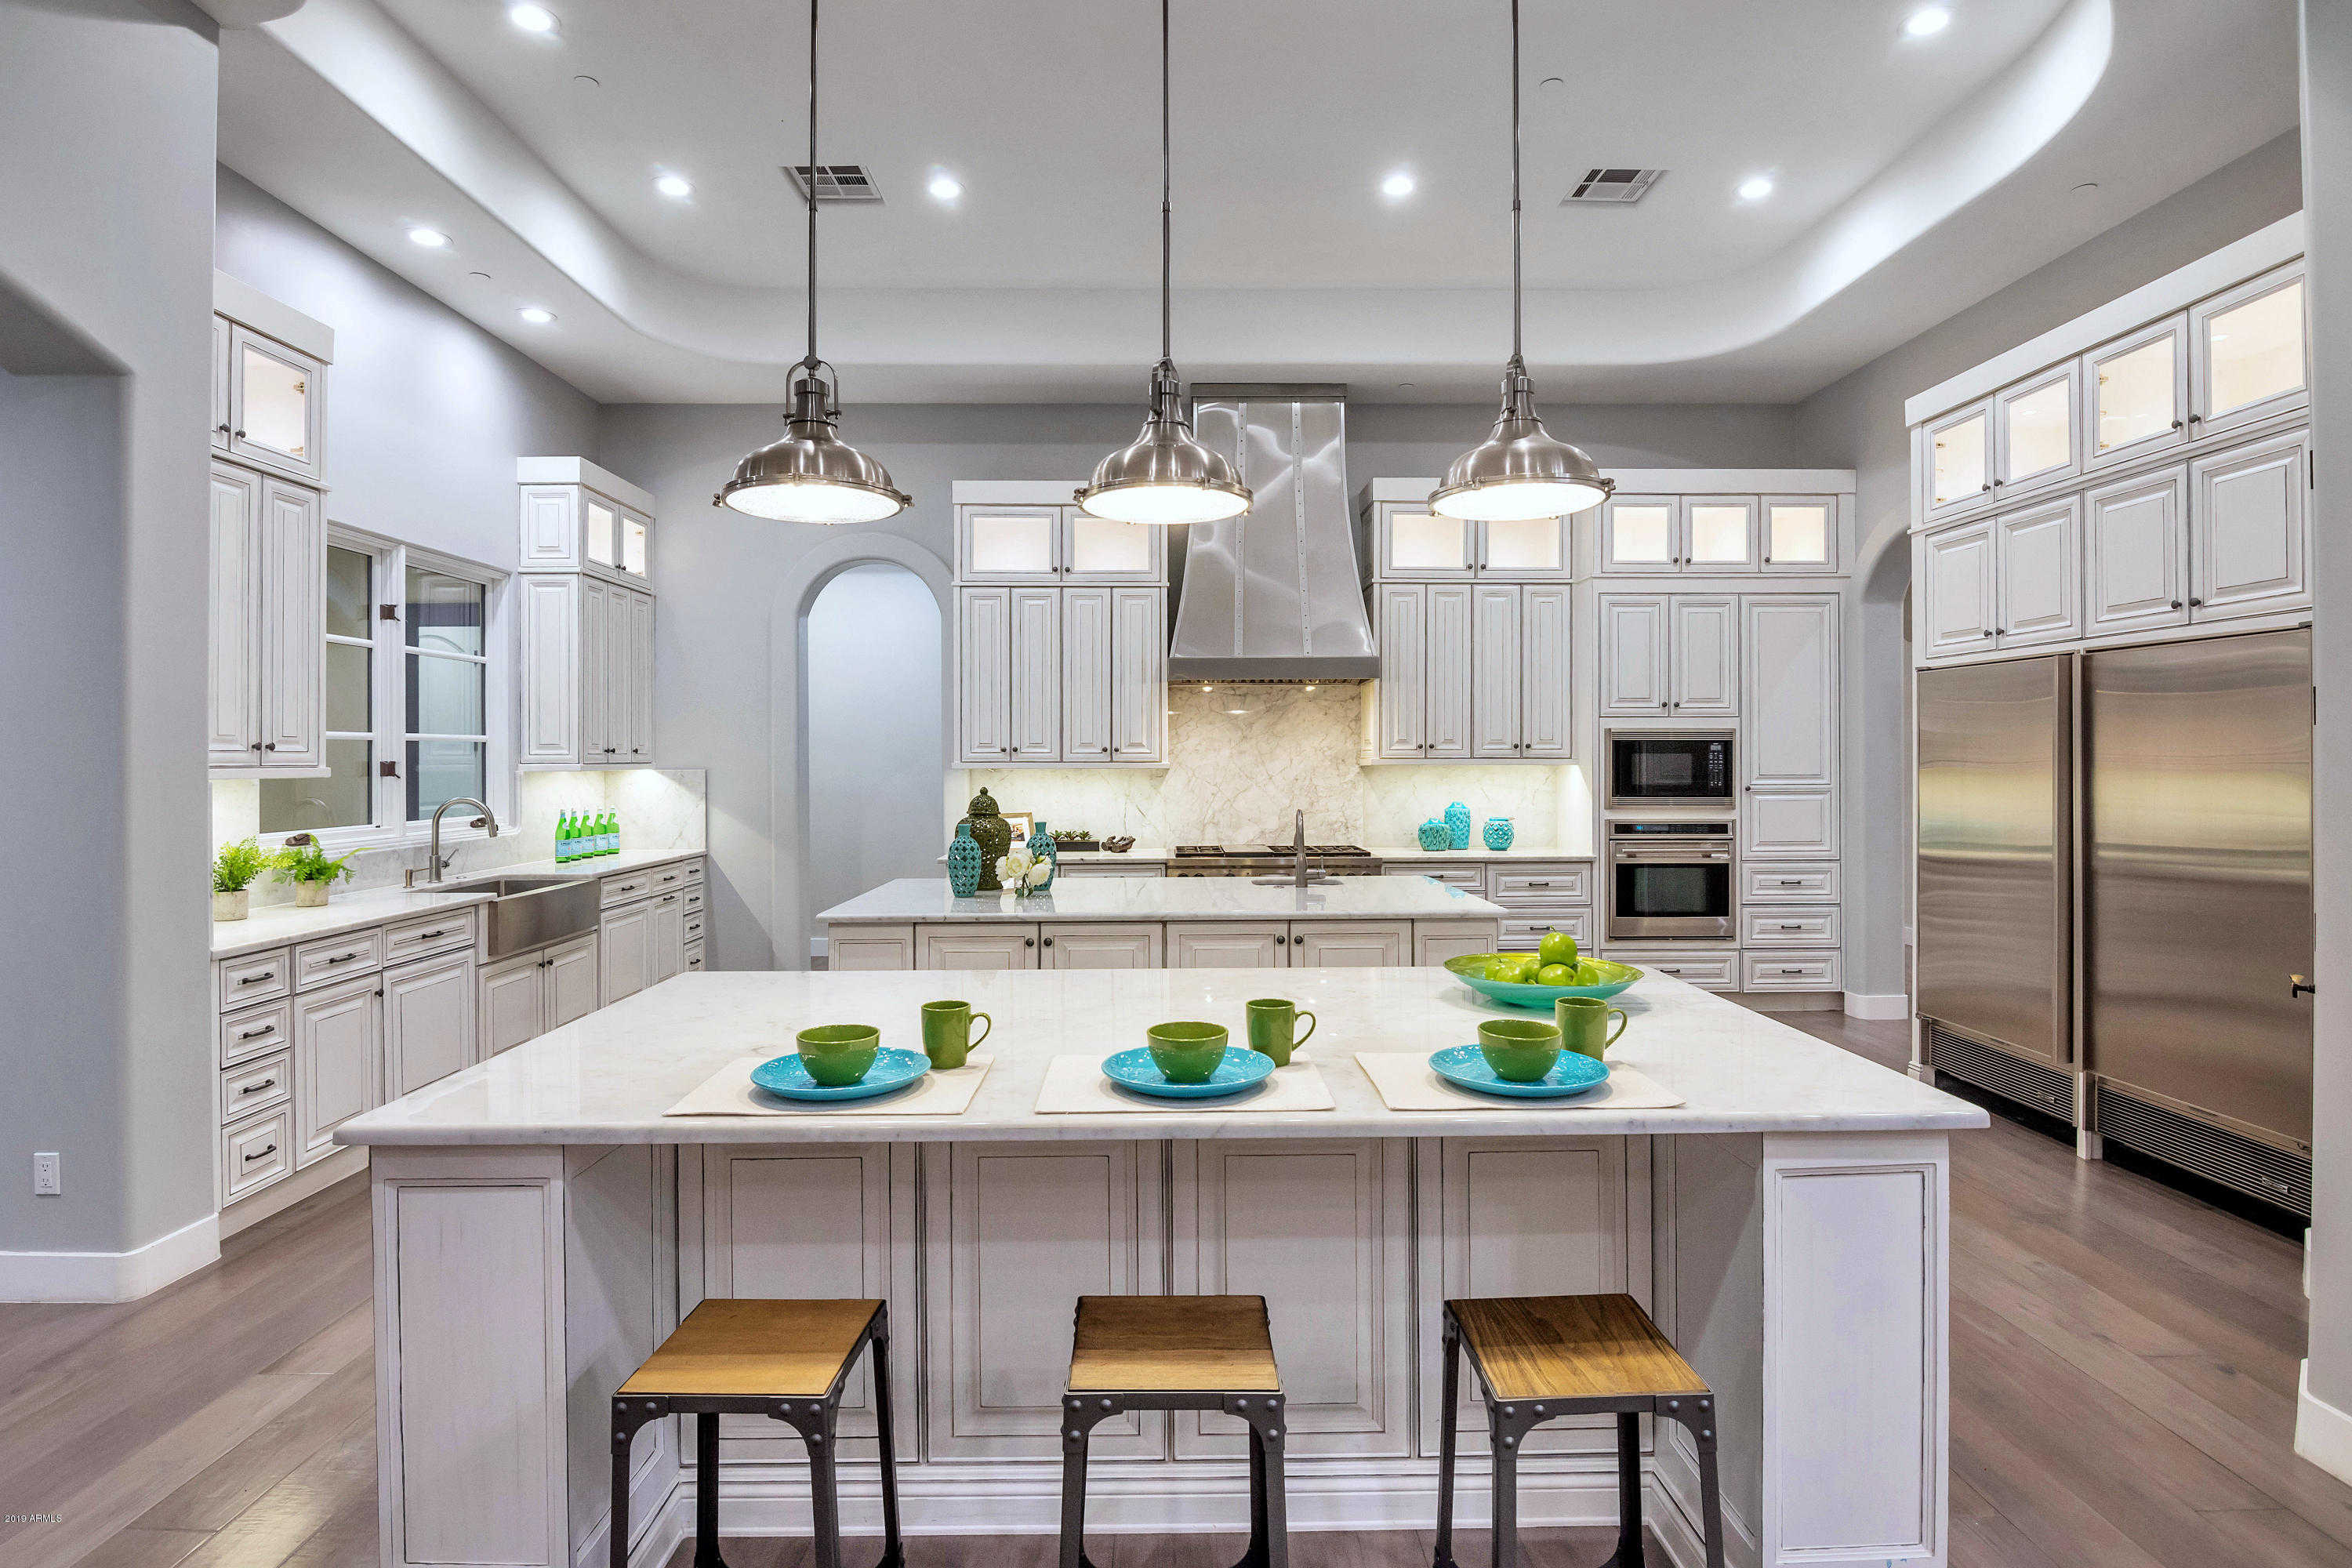 $3,100,000 - 6Br/7Ba - Home for Sale in Bradley Acres, Paradise Valley